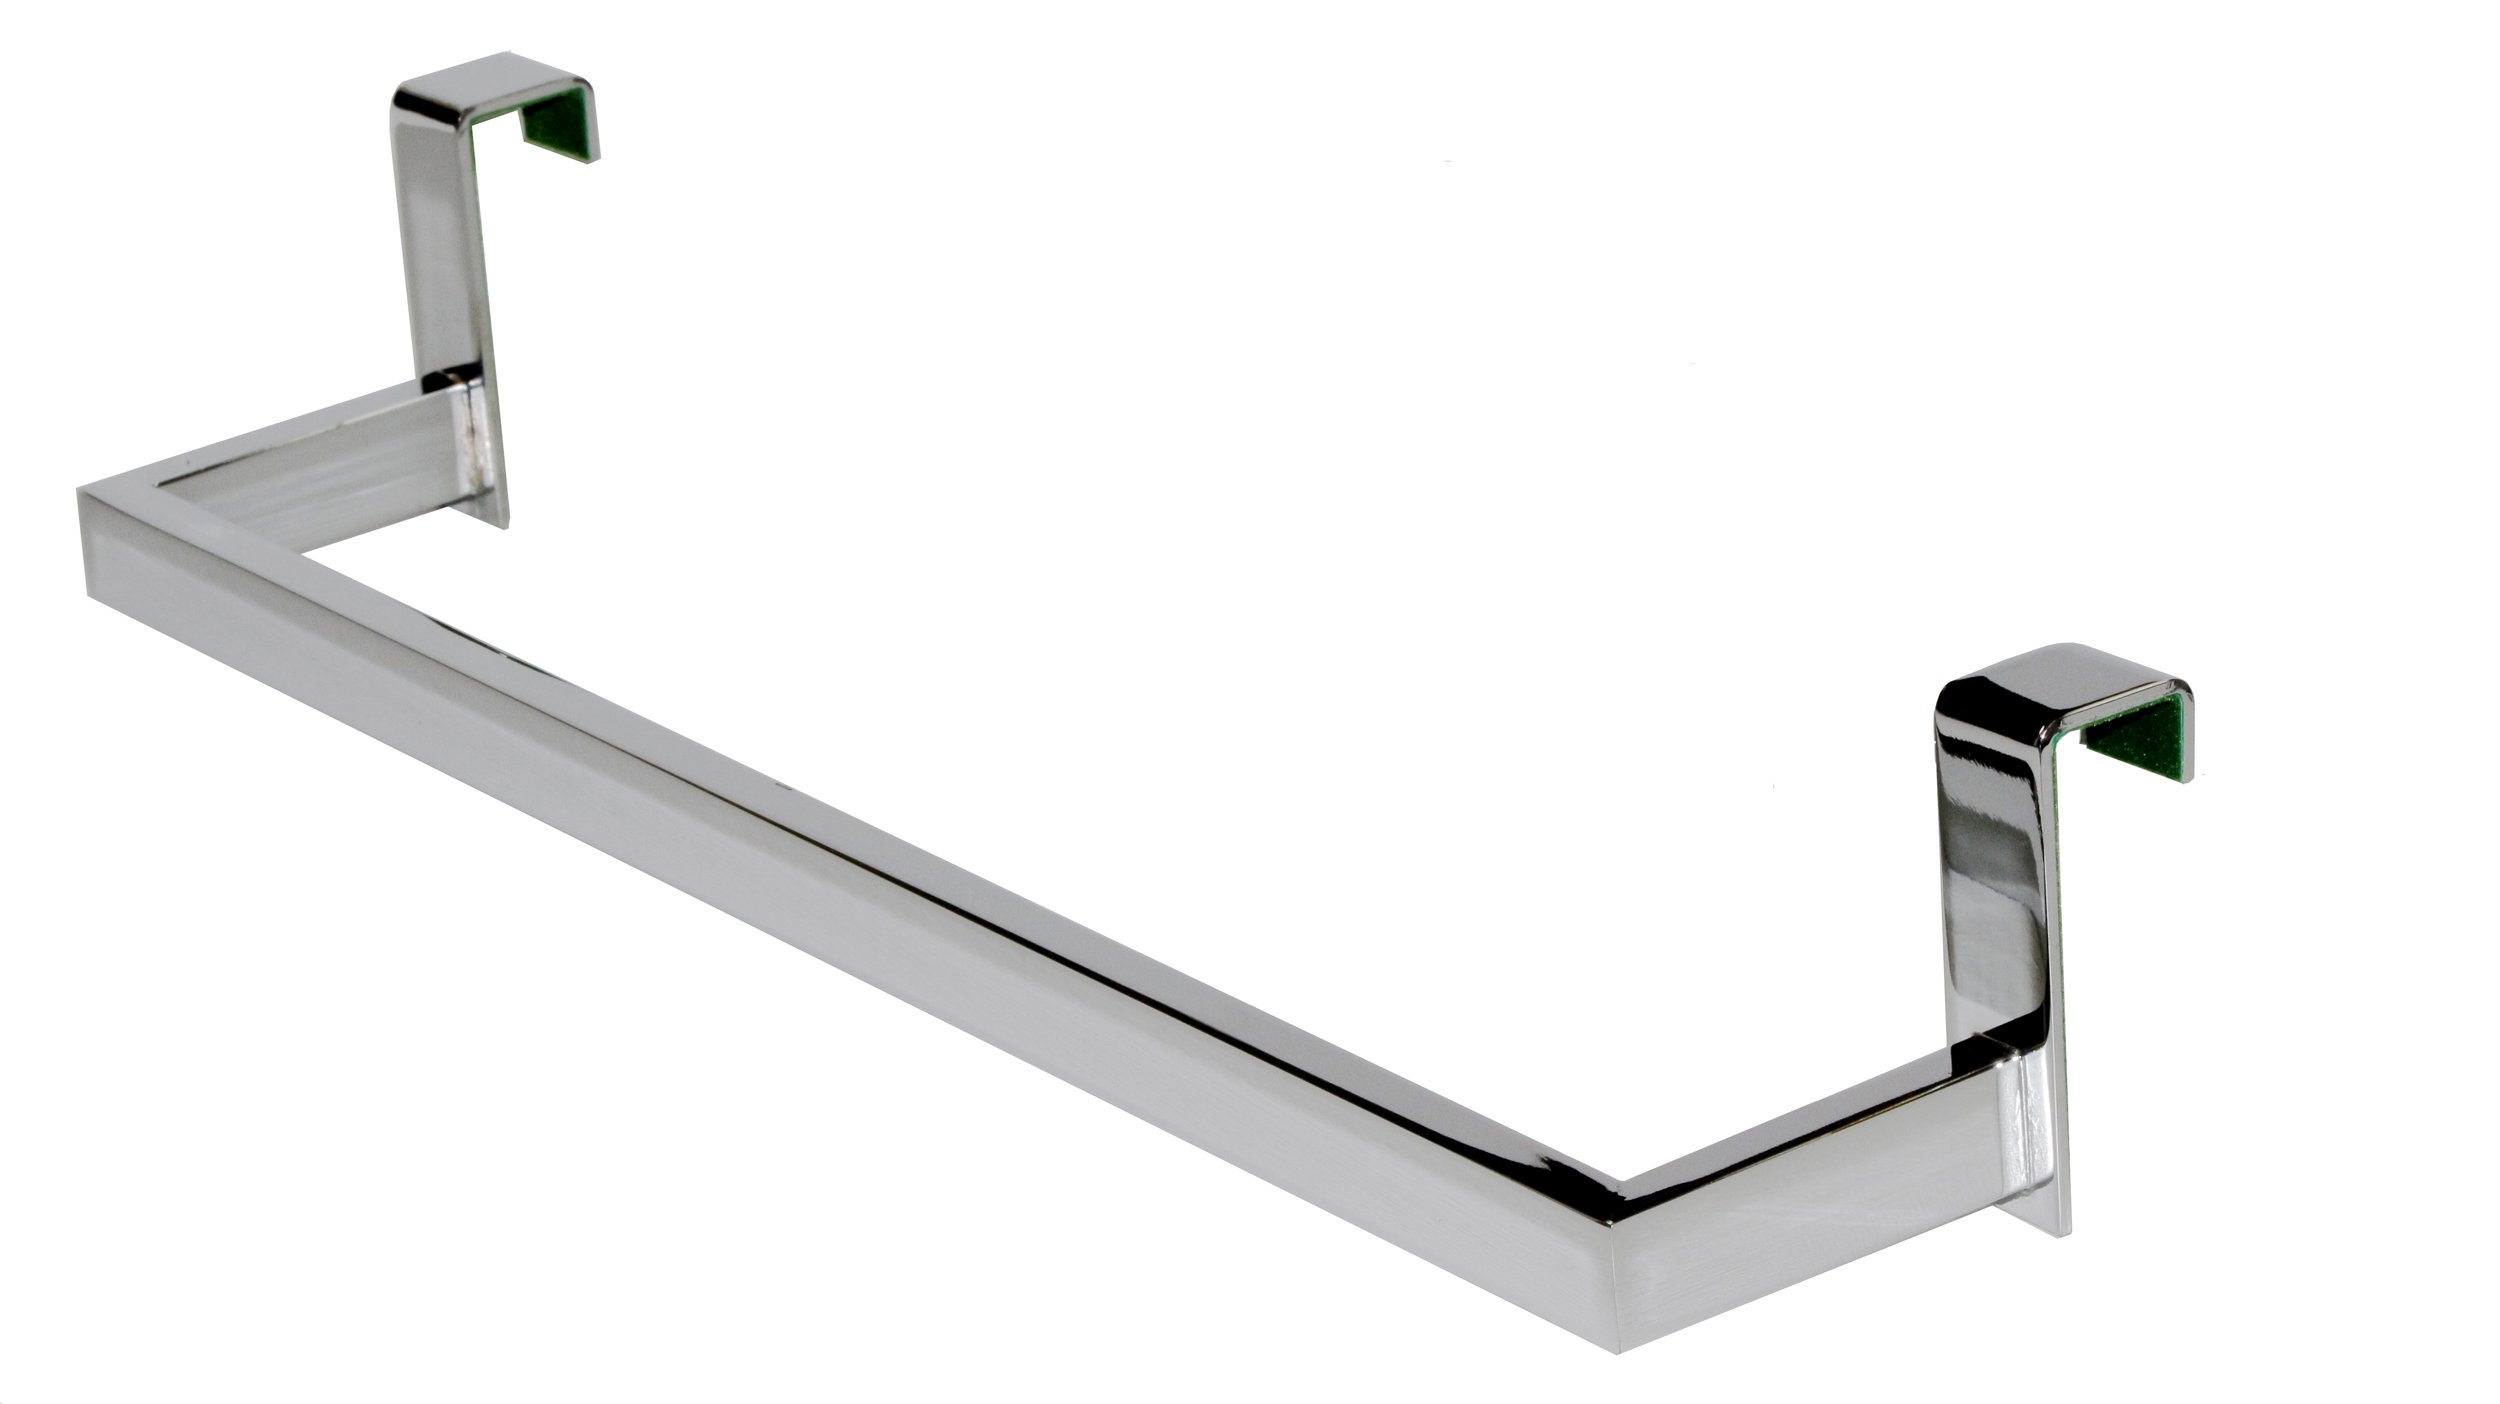 Over the Cabinet Towel Bar 14-1/2-inch, Brass Polished Chrome, Over the Door Towel Bar Holder-rectangular Lines, Made in Spain (Euroepan Brand)